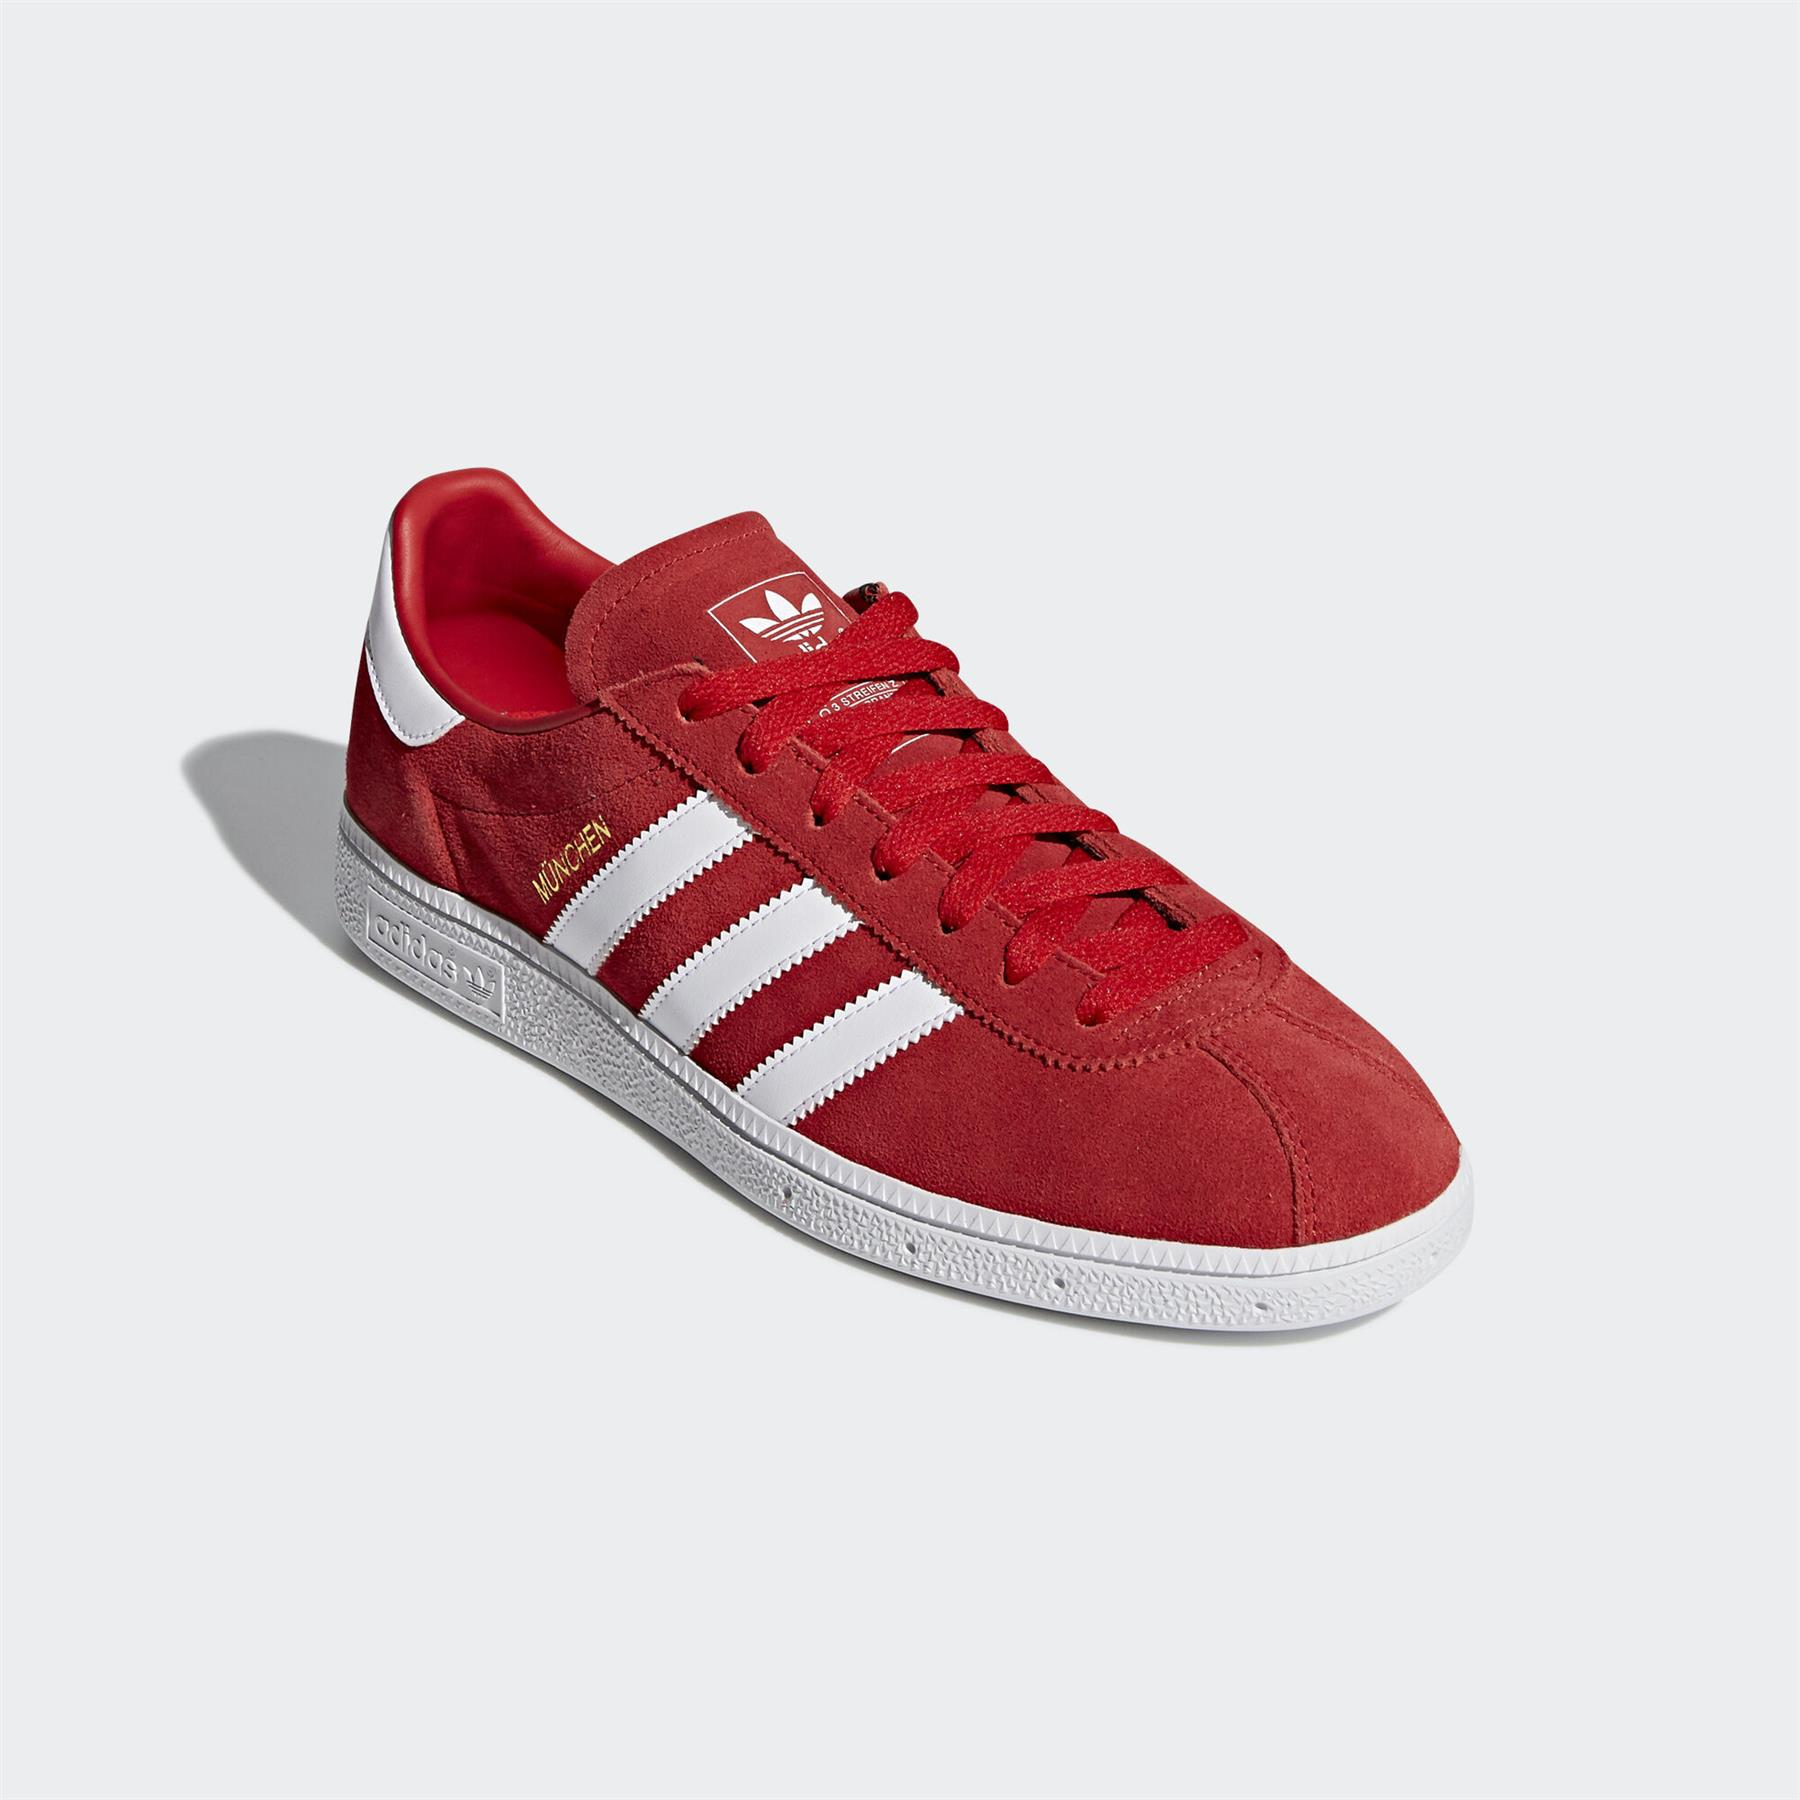 adidas ORIGINALS MUNCHEN TRAINERS RED SHOES SNEAKERS RETRO CITY ...